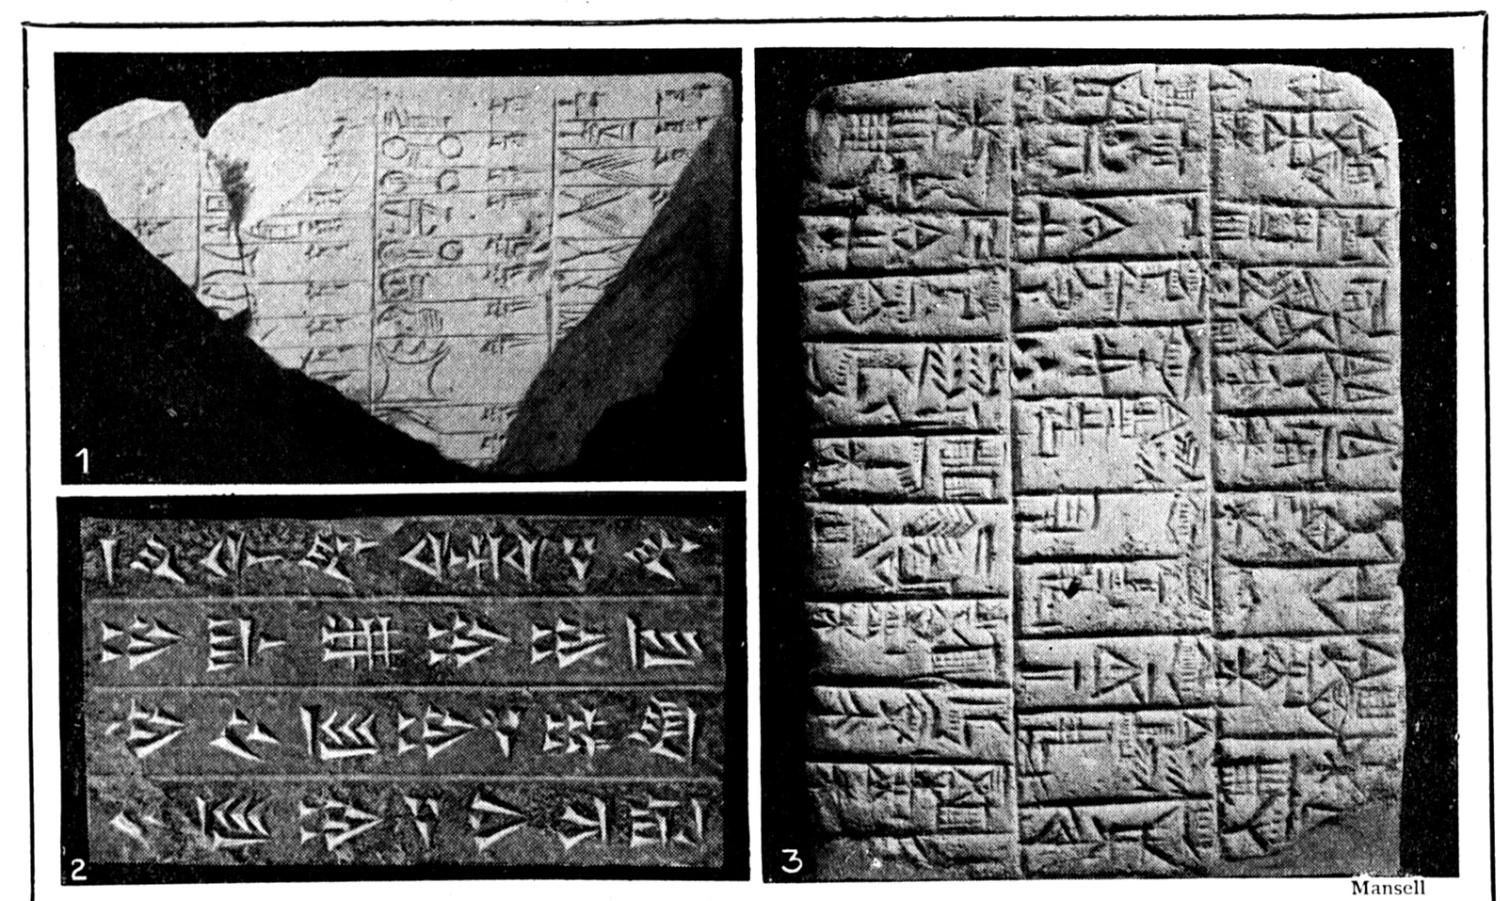 Sumerian Writing And Cuneiform Facts For Kids